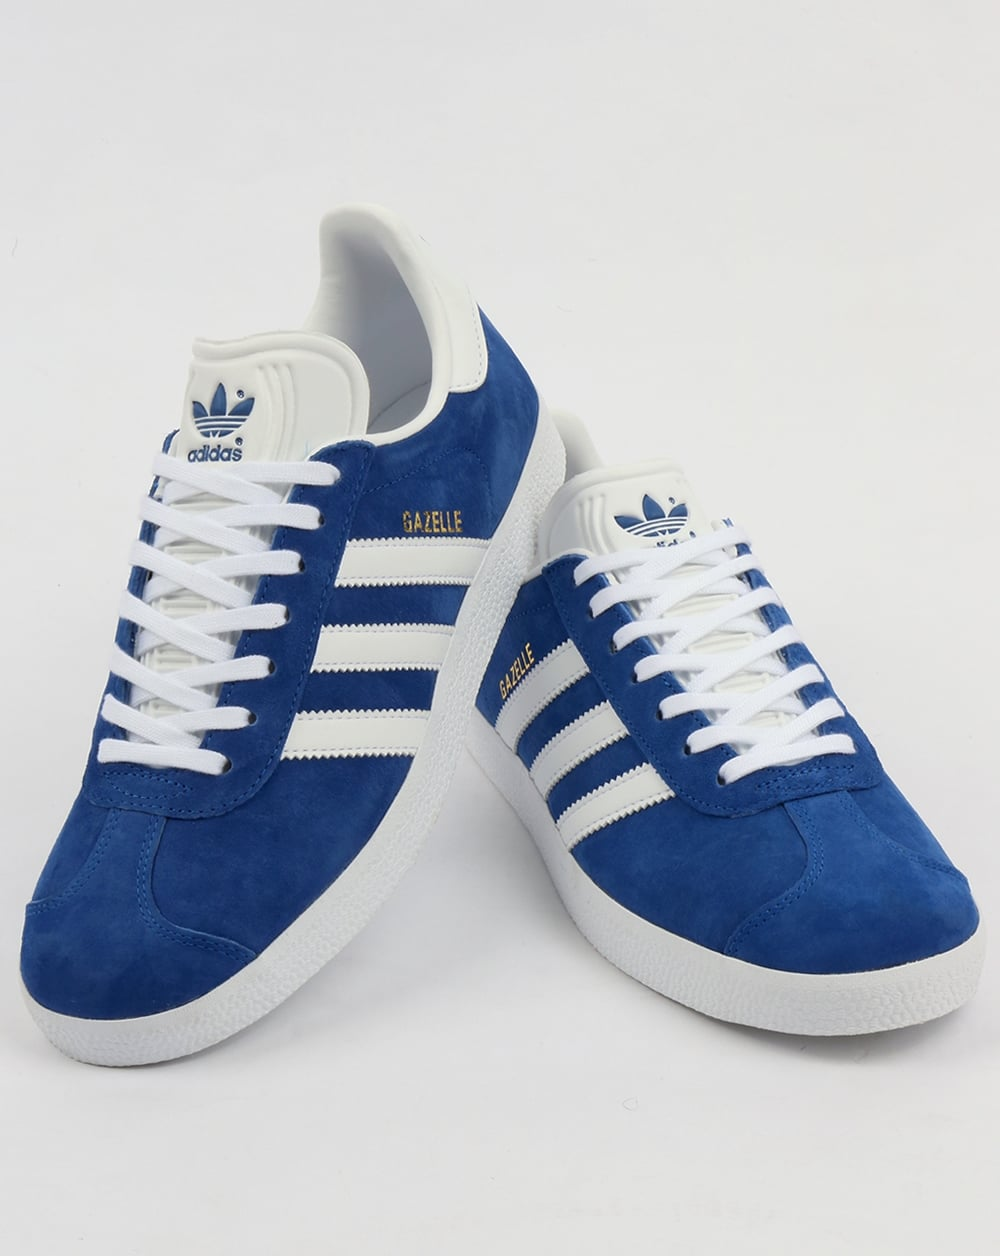 adidas gazelle mens royal blue nz